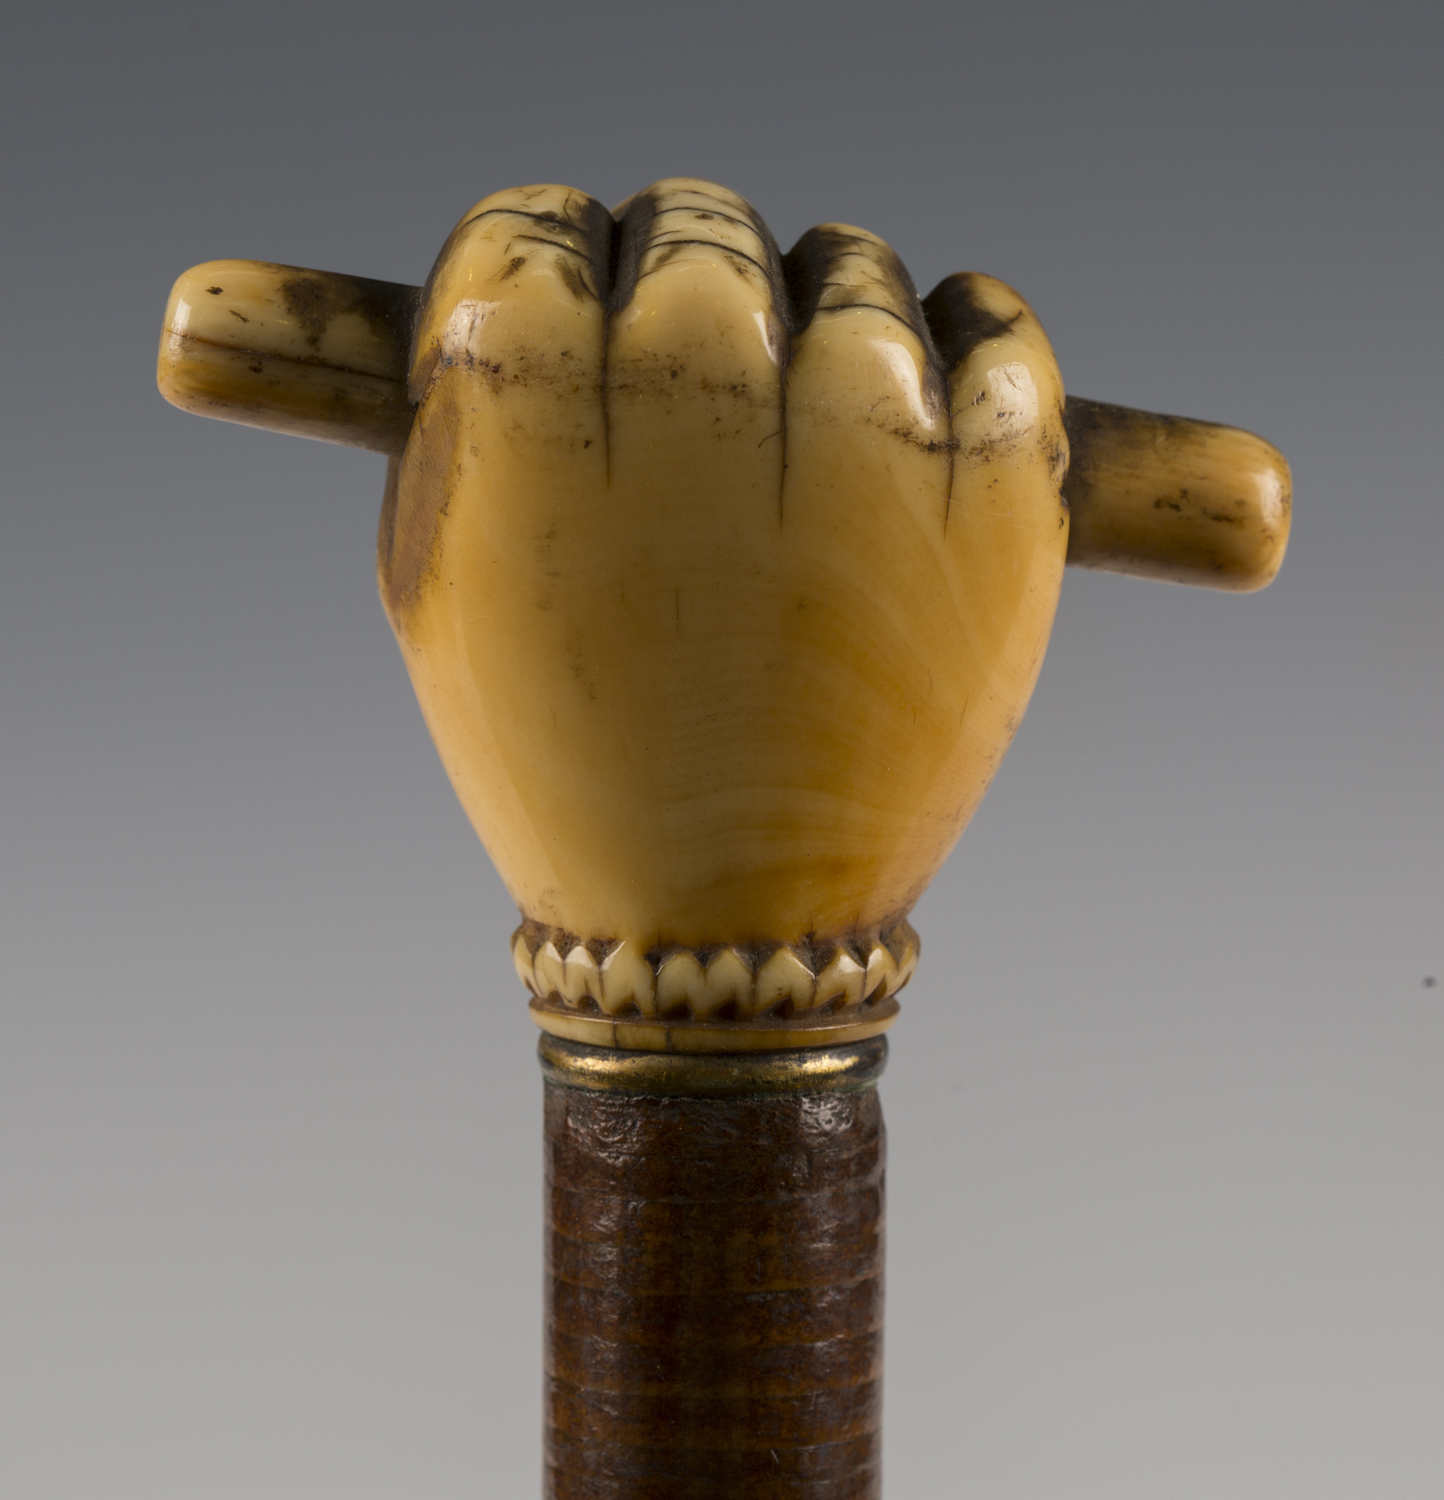 A 19th century sectional joined leather walking cane, the ivory handle carved as a hand holding a - Image 6 of 7